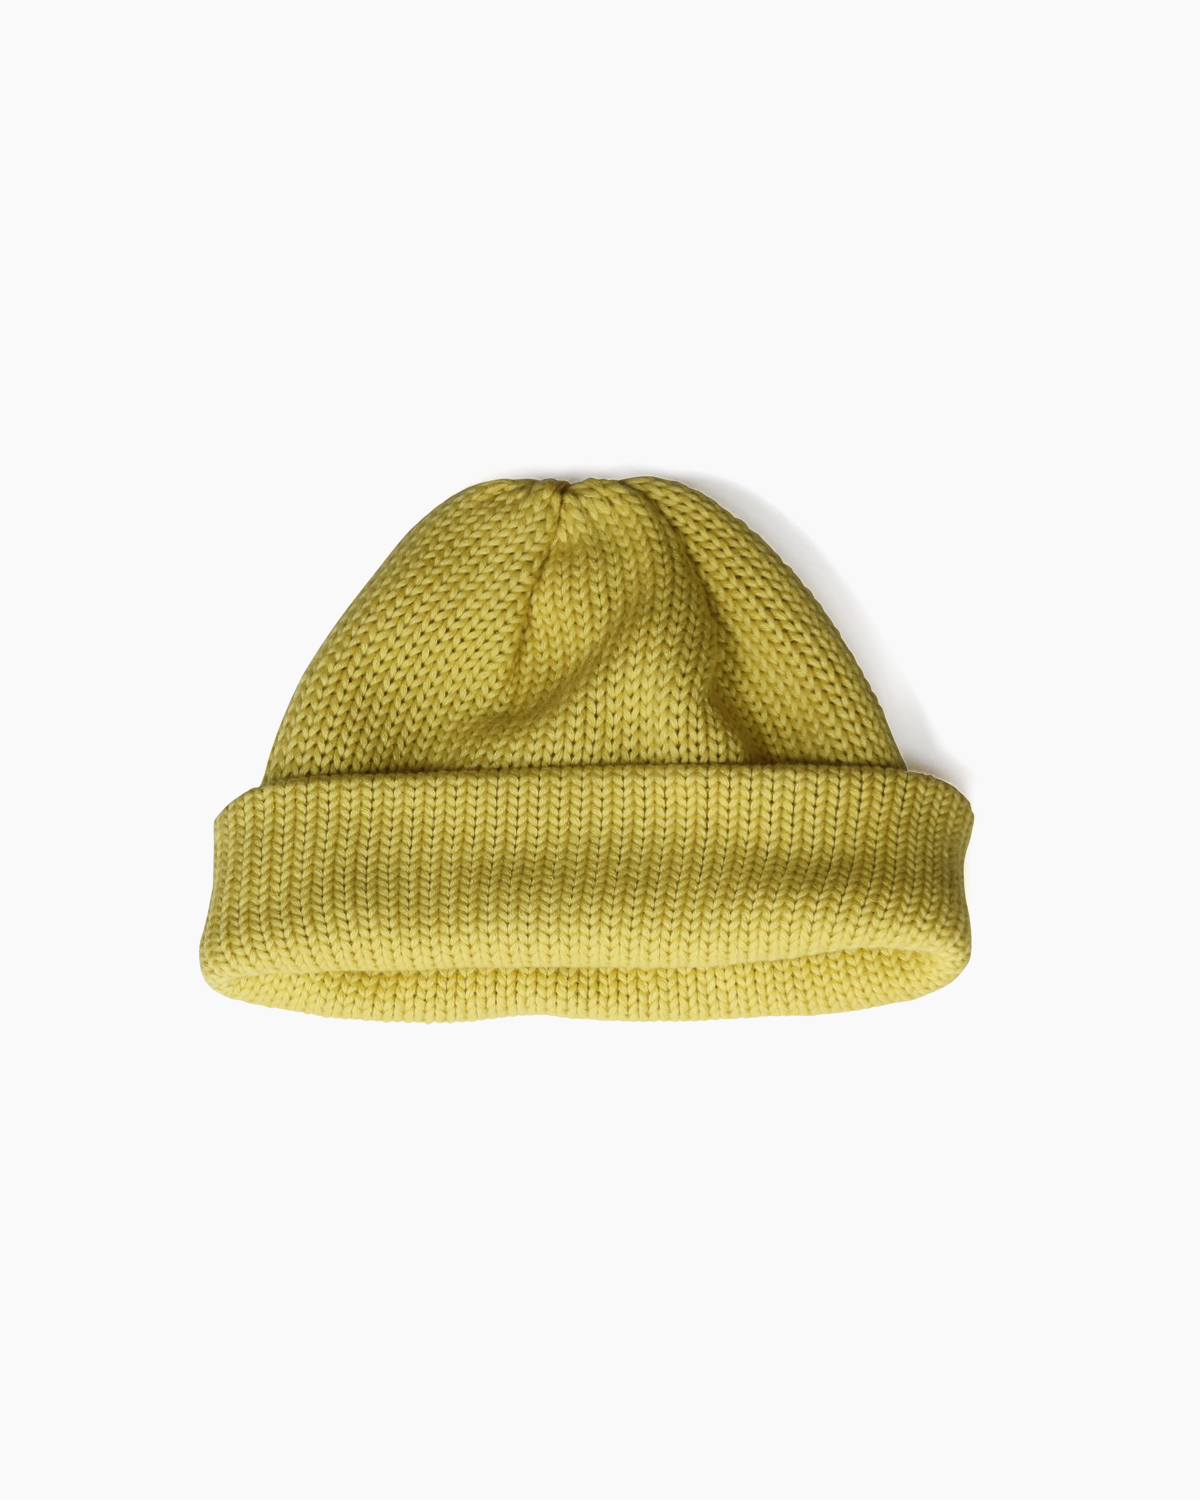 STANDARD KNIT - Yellow|COMESANDGOES